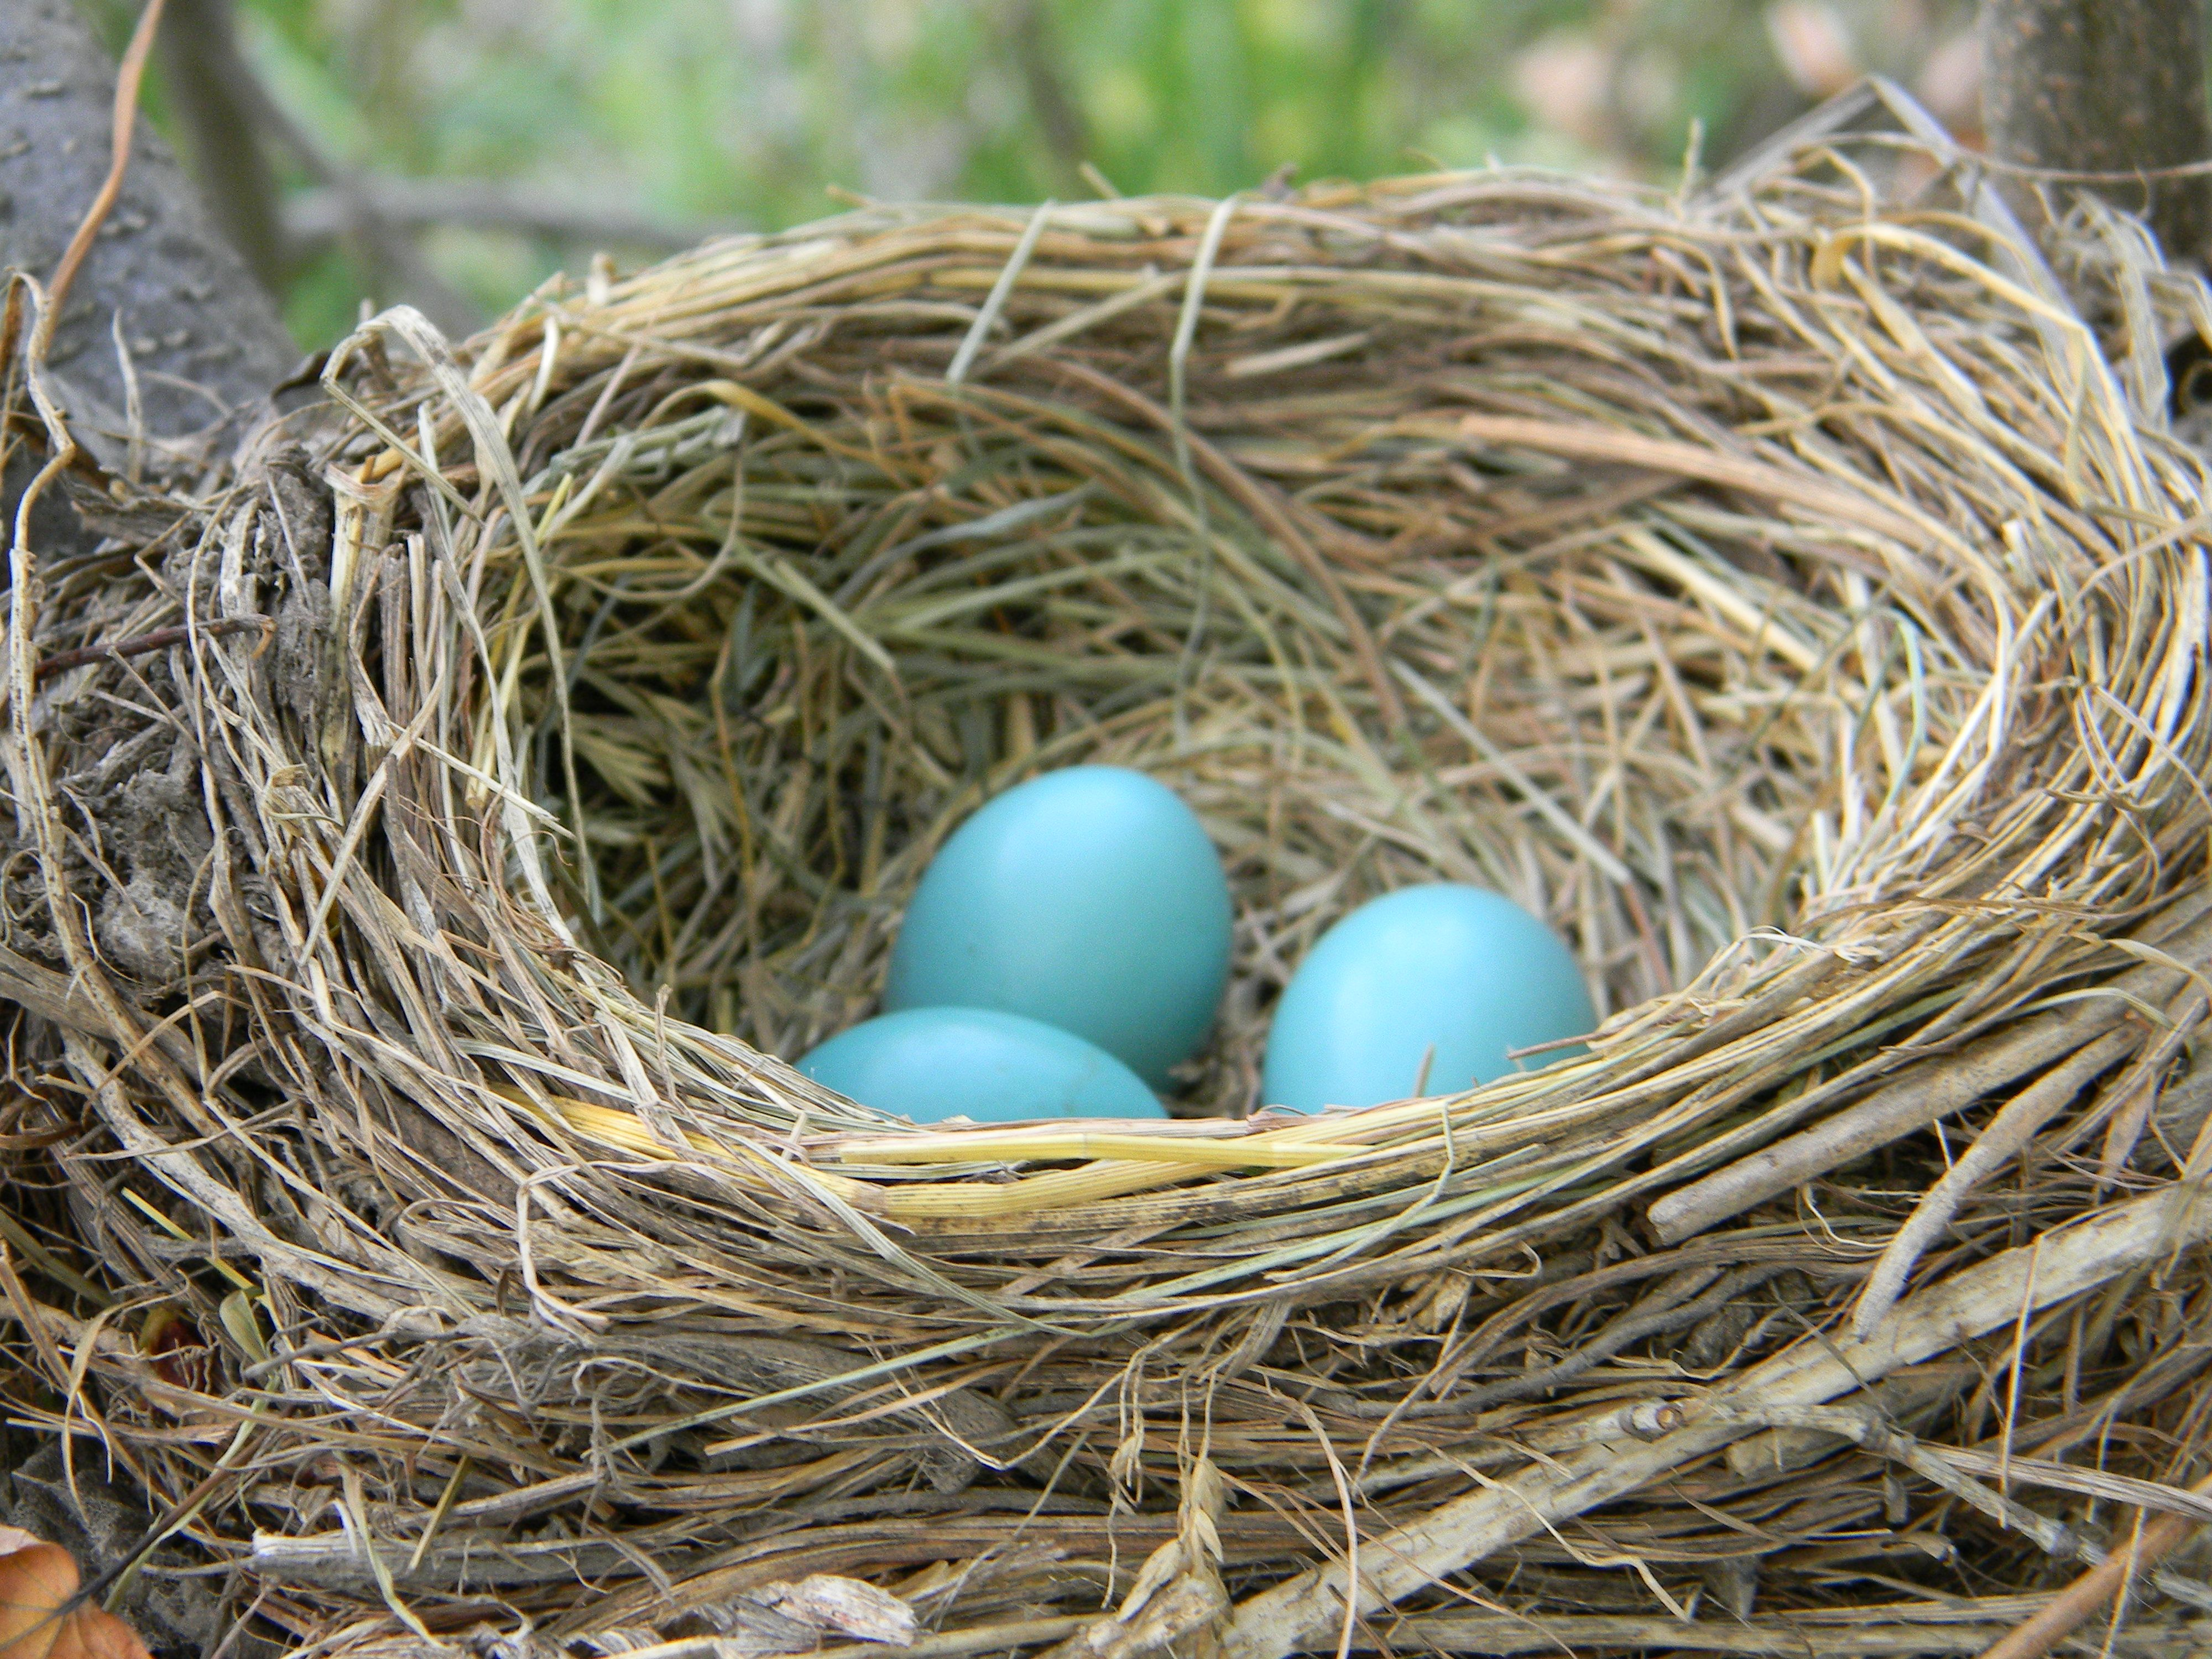 Nest and Egg Identification Resources The Infinite